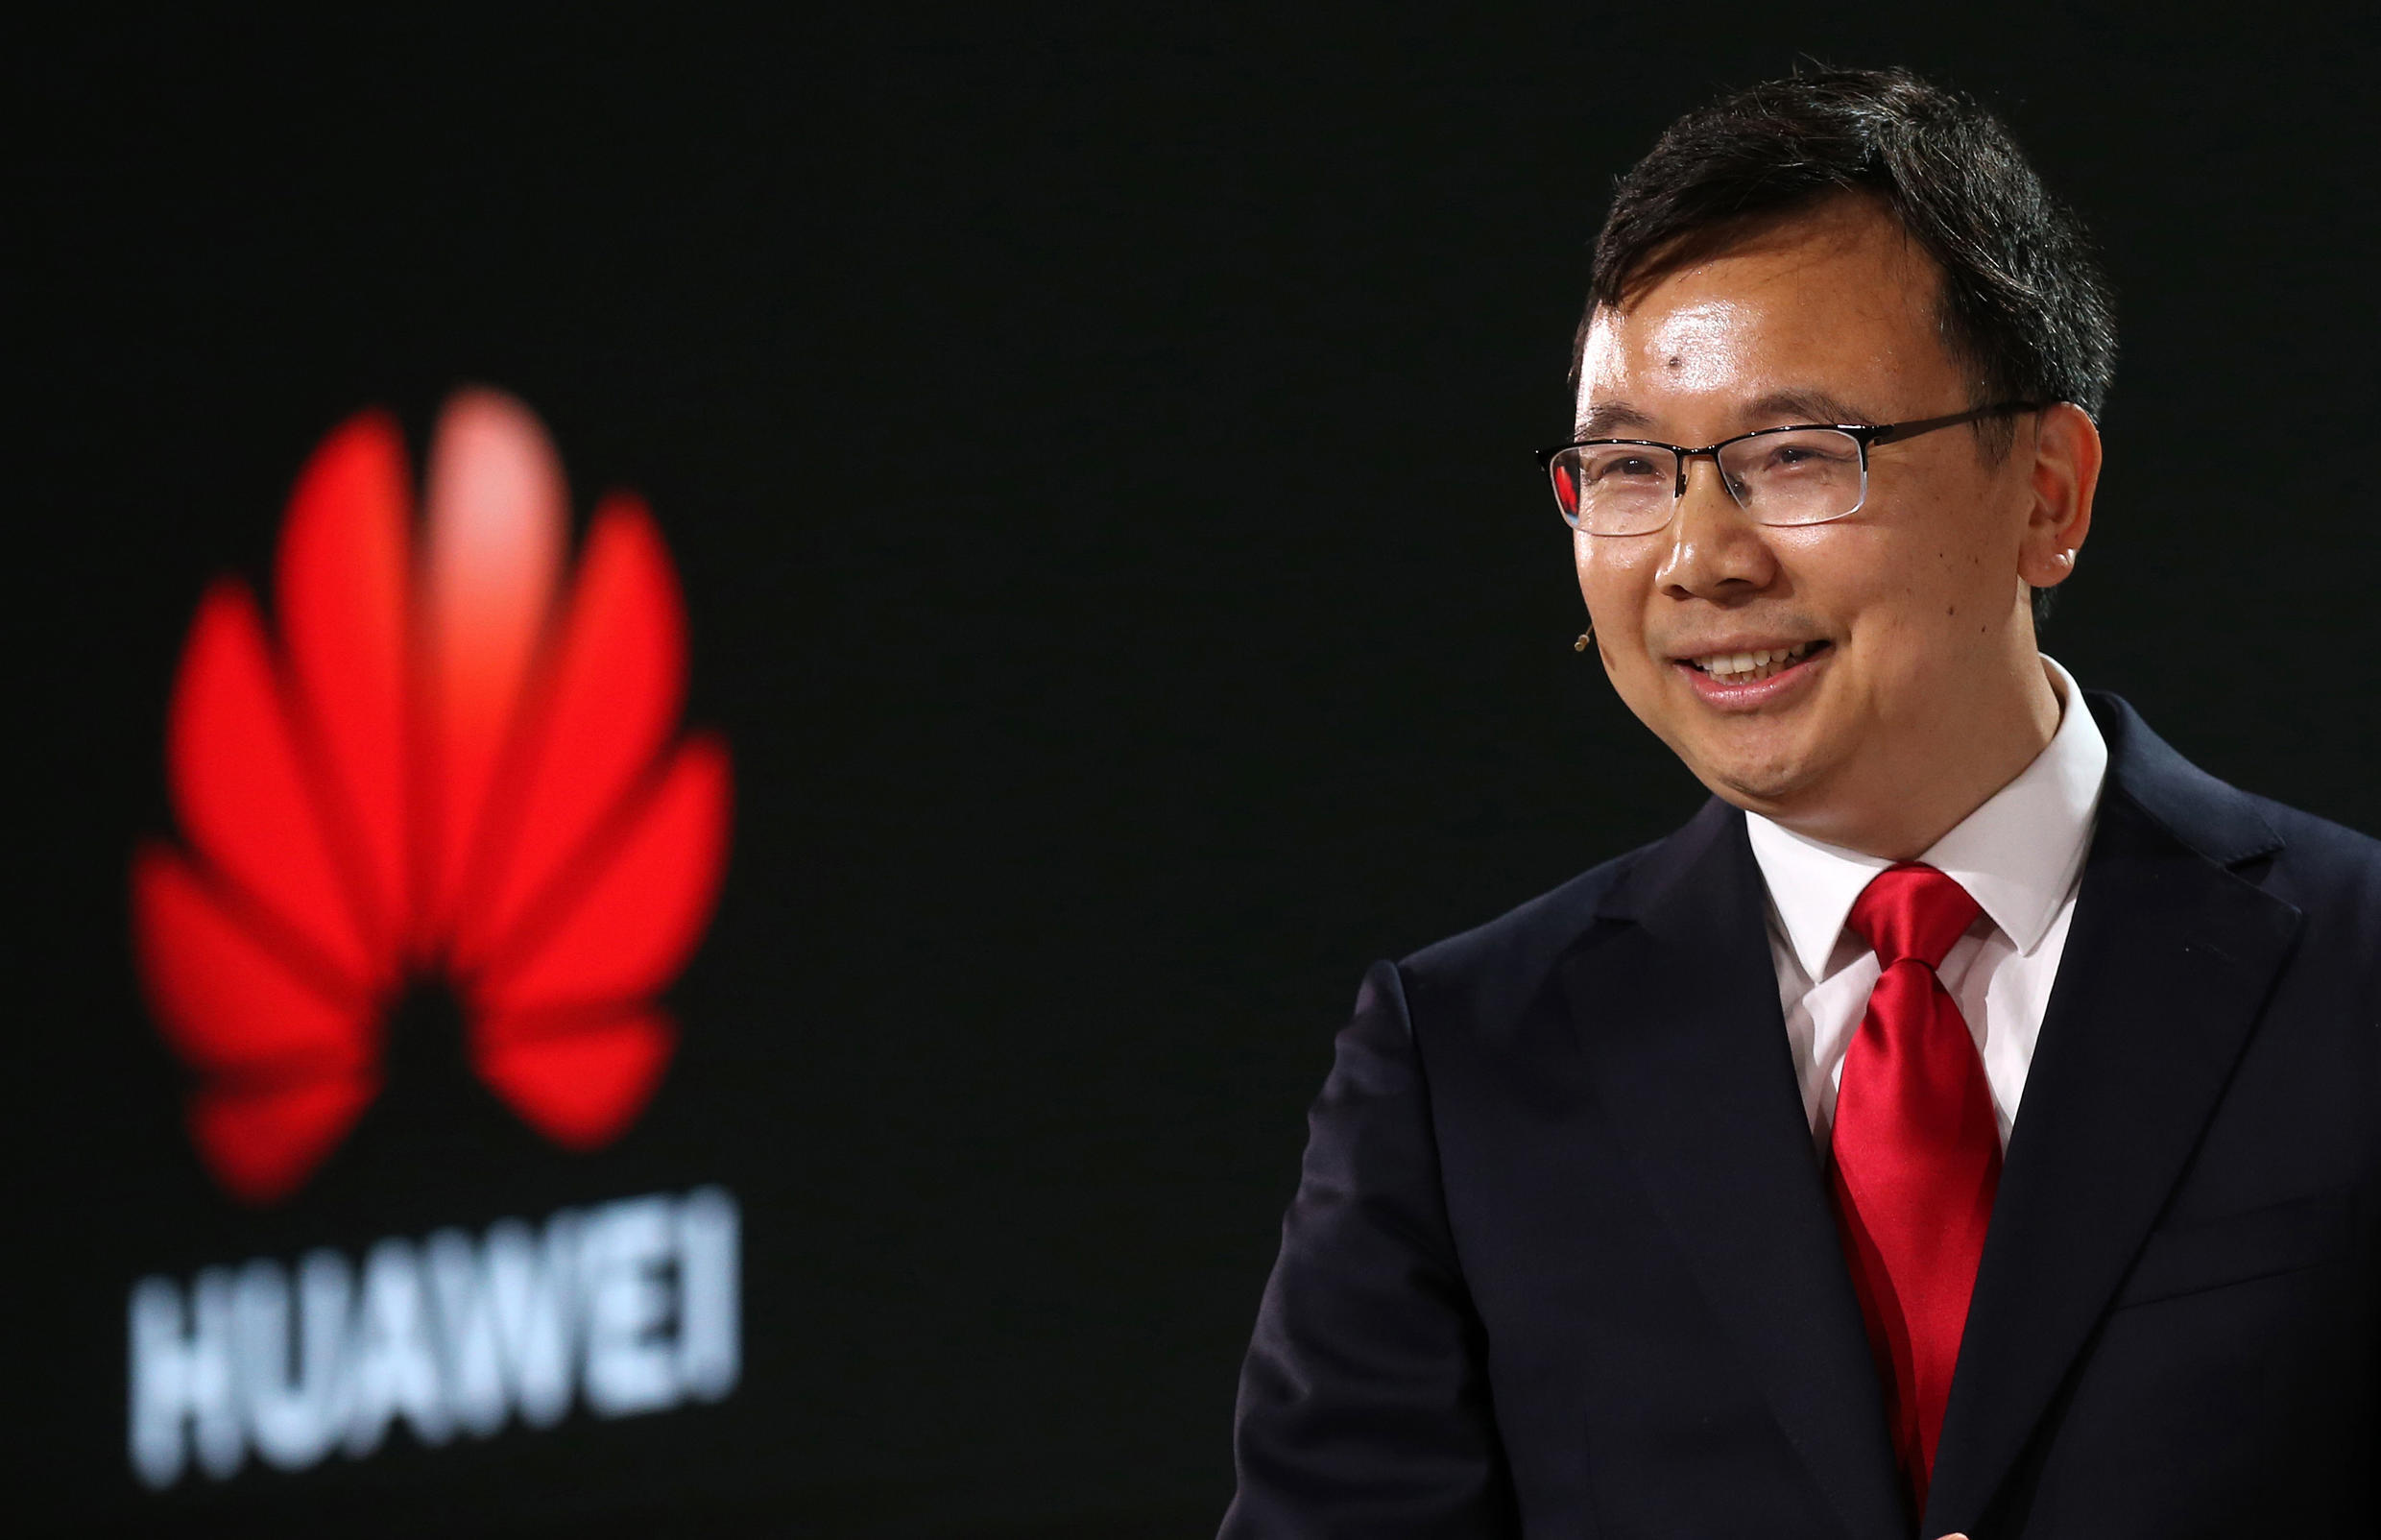 (FILE PHOTO) President of Chinese electronics giant Huawei, Yang Chaobin, in London on February 20, 2020.